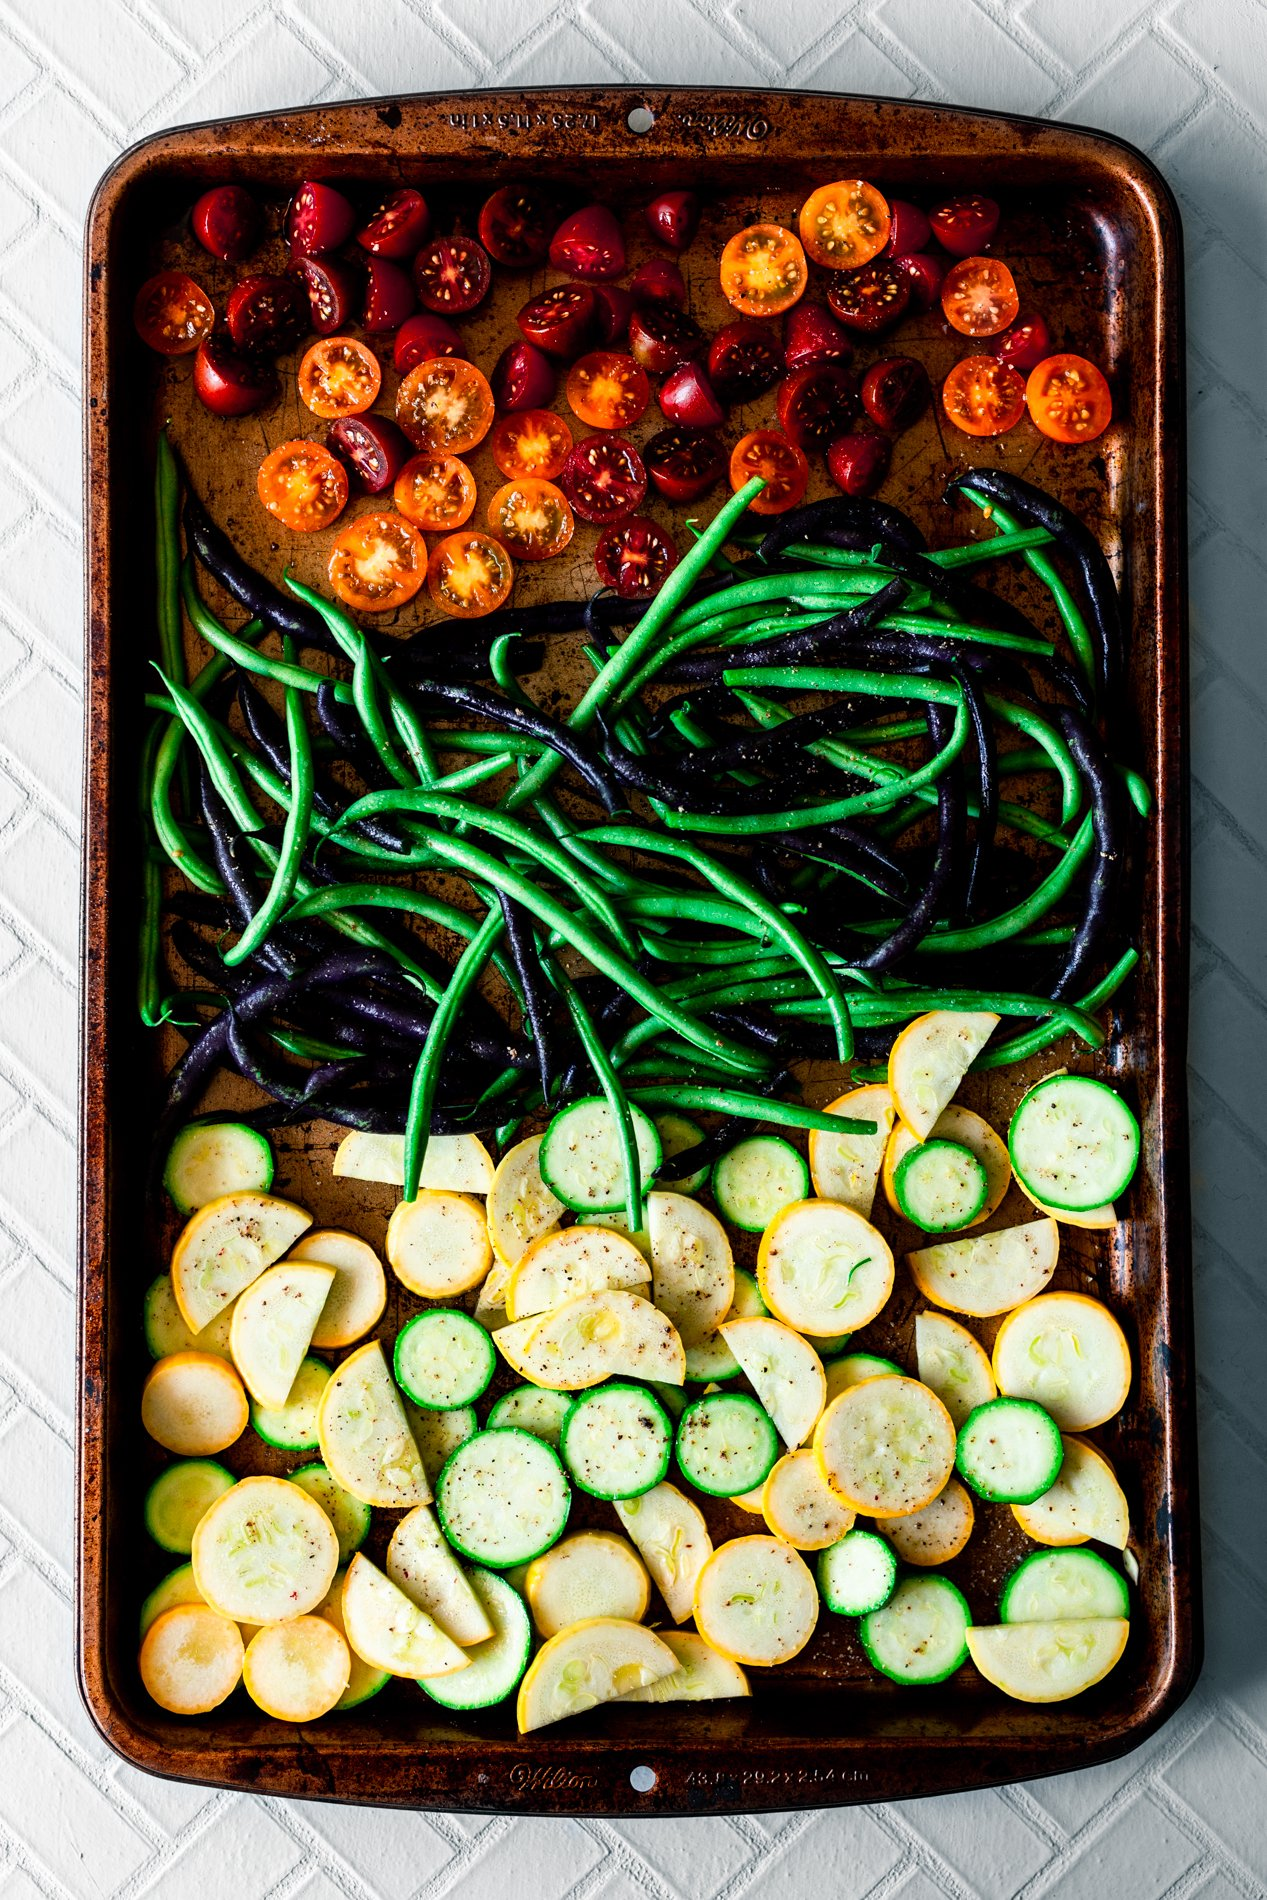 overhead view of a sheet pan full of cherry tomatoes, green and purple beans, and zucchini and squash ready for roasting